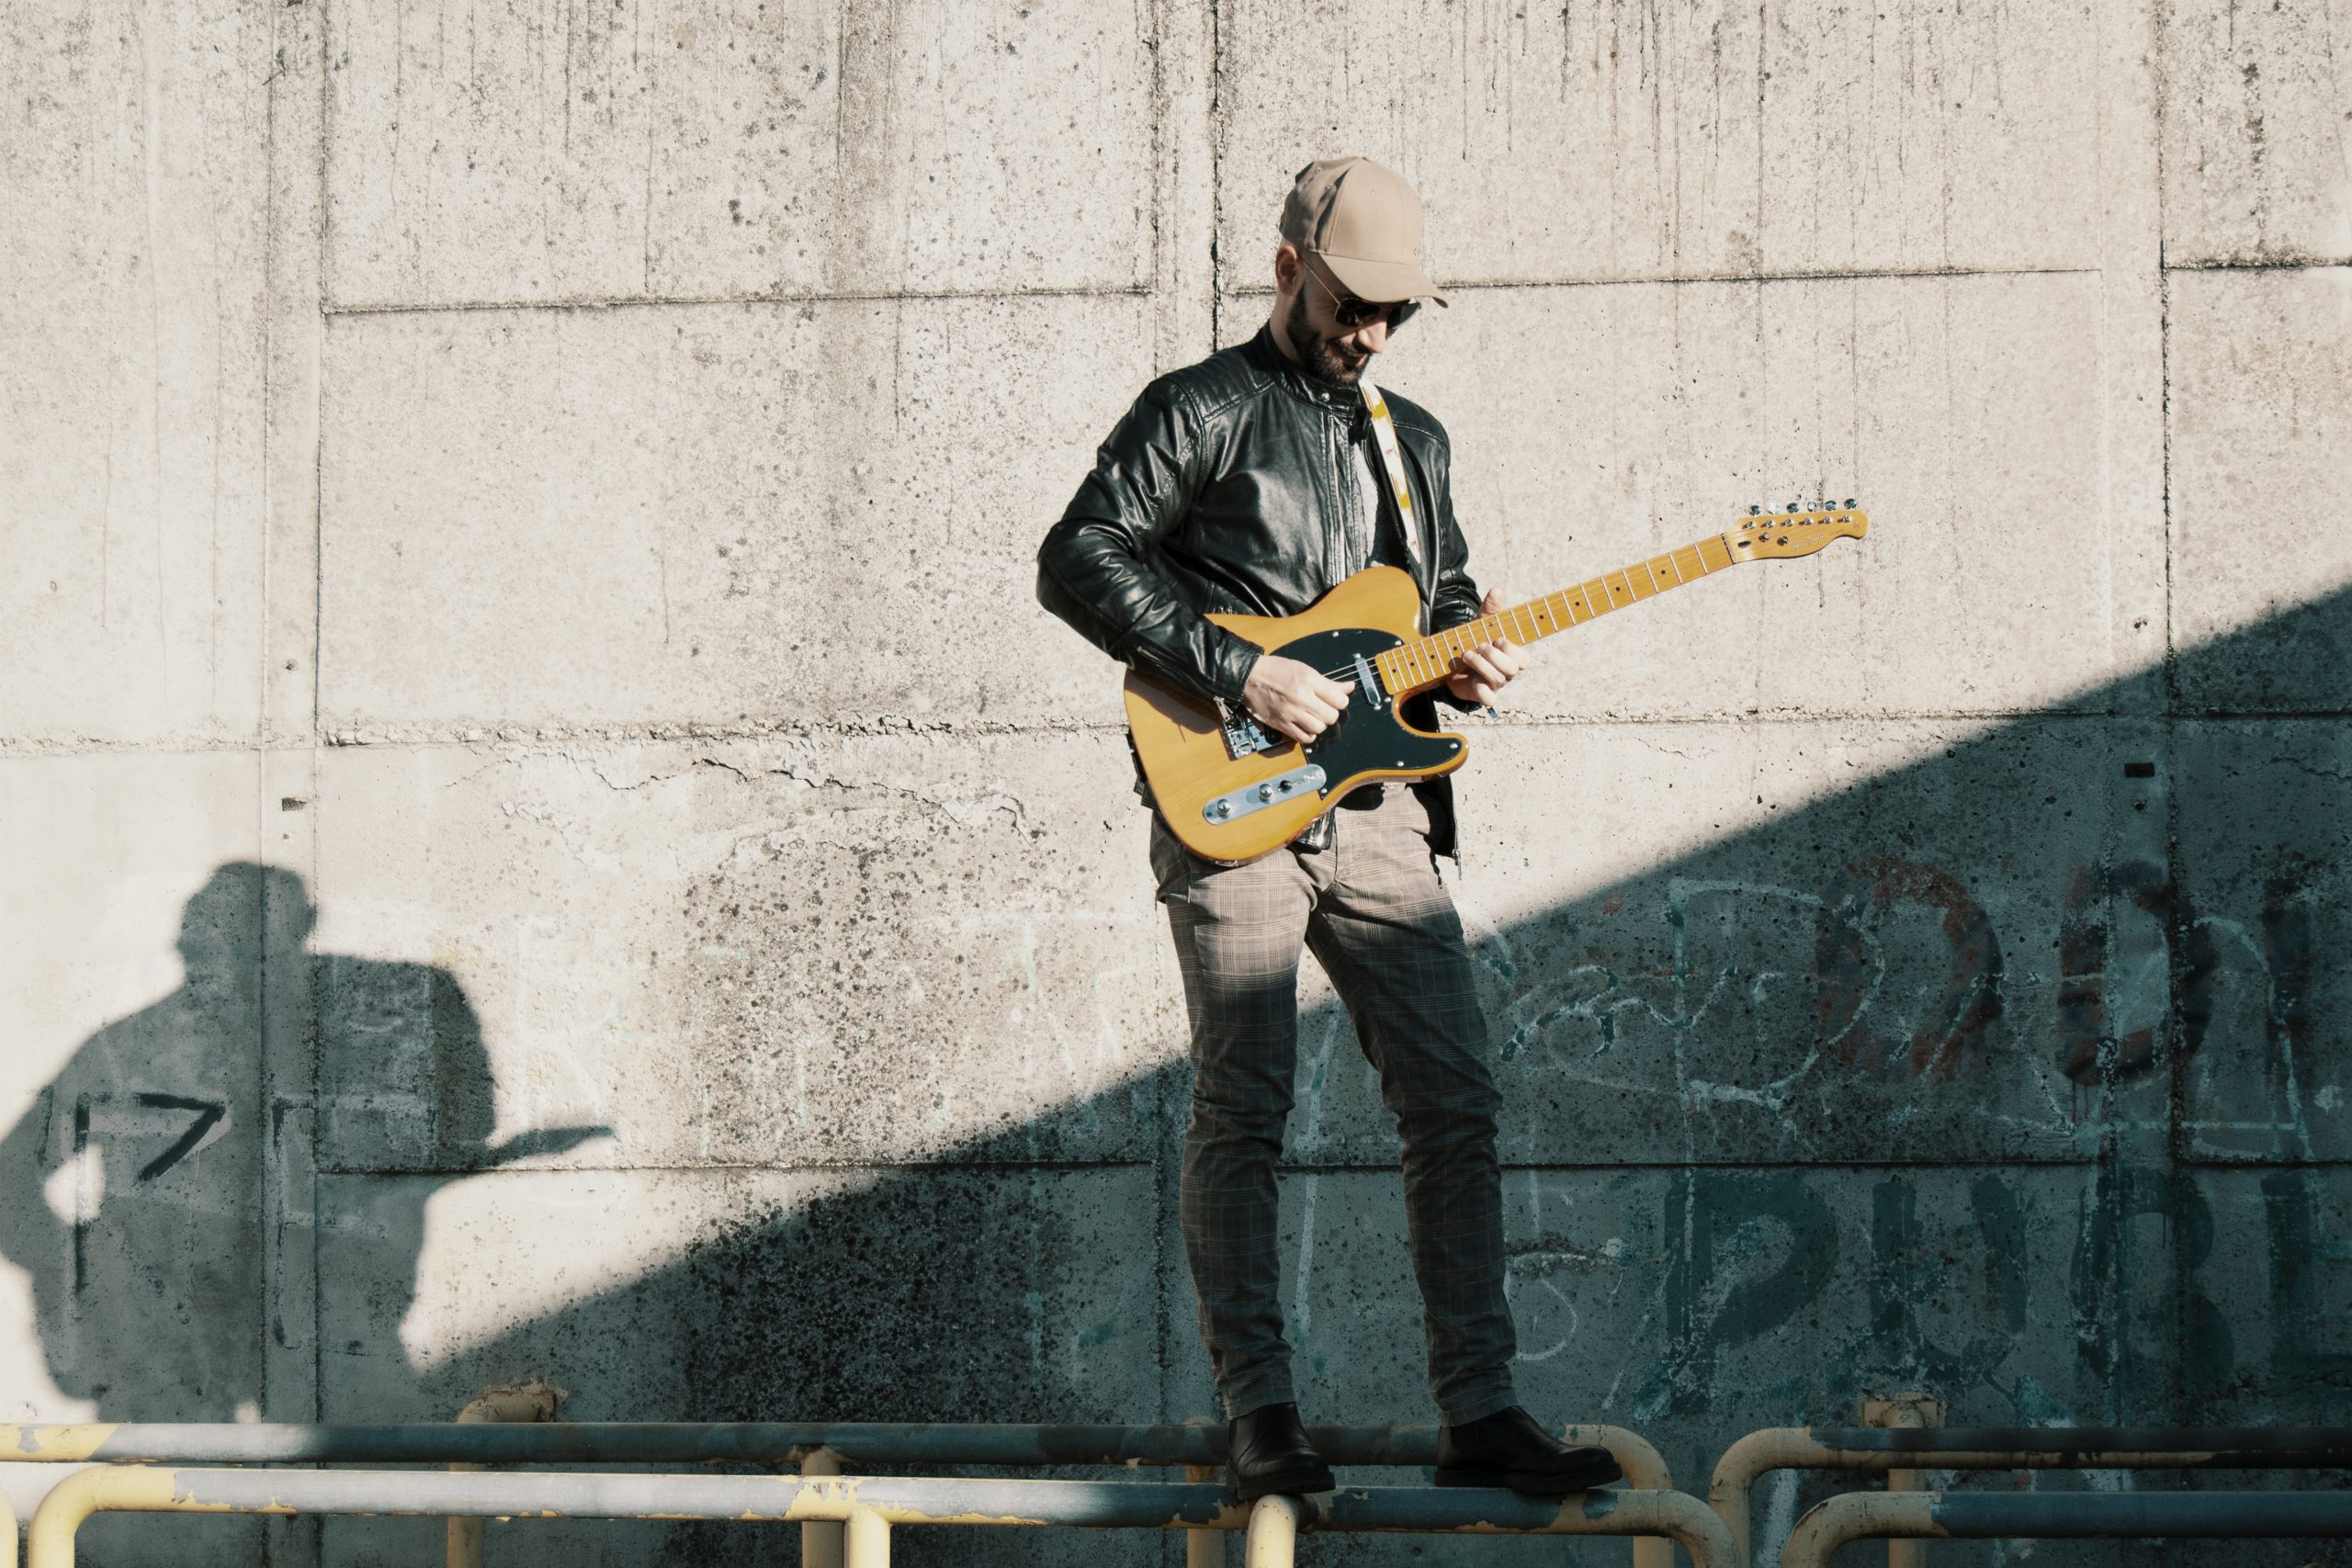 Guitar player in front of a stadium